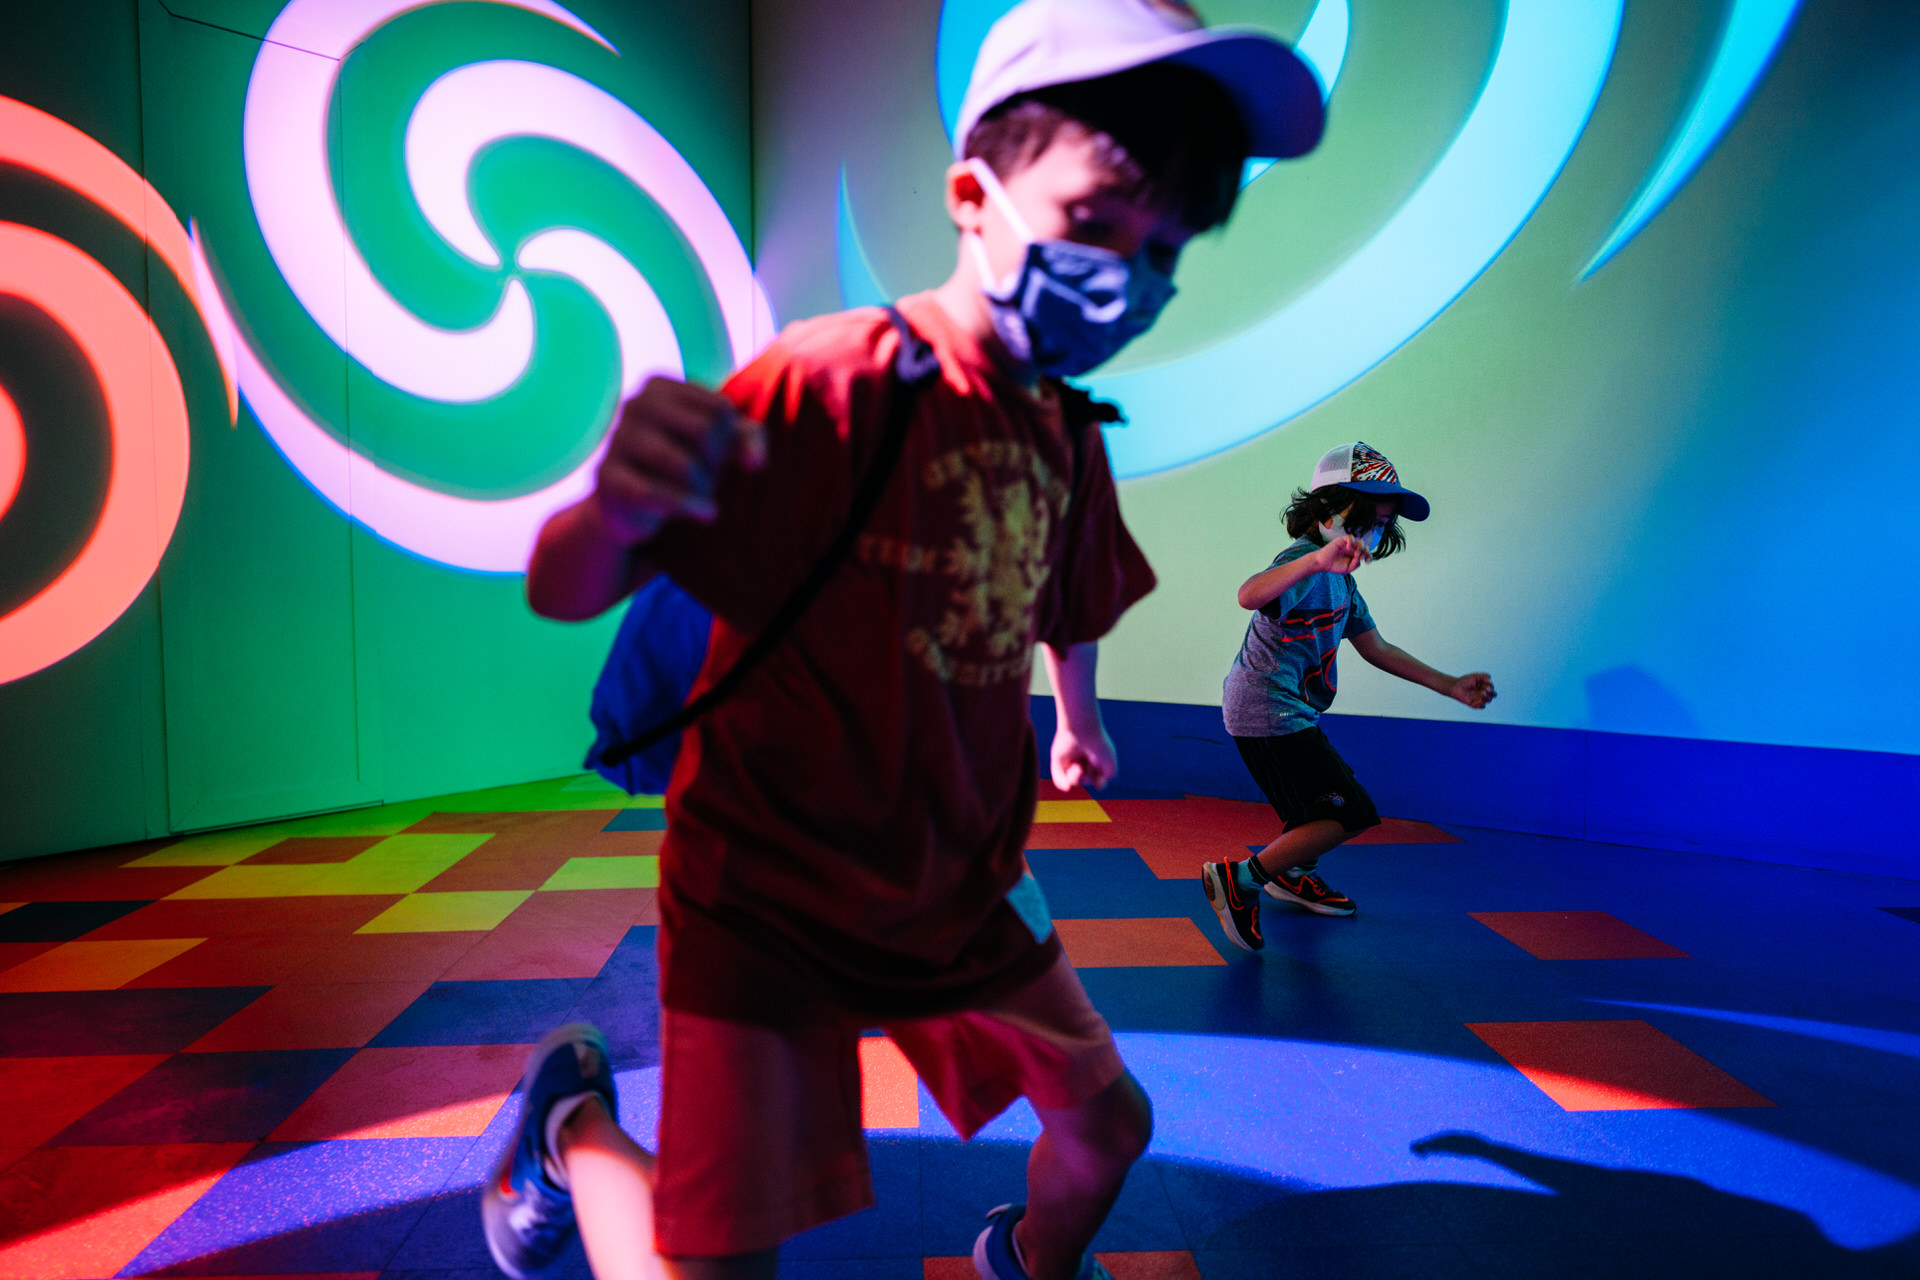 boys play inside world of imagination with masks on